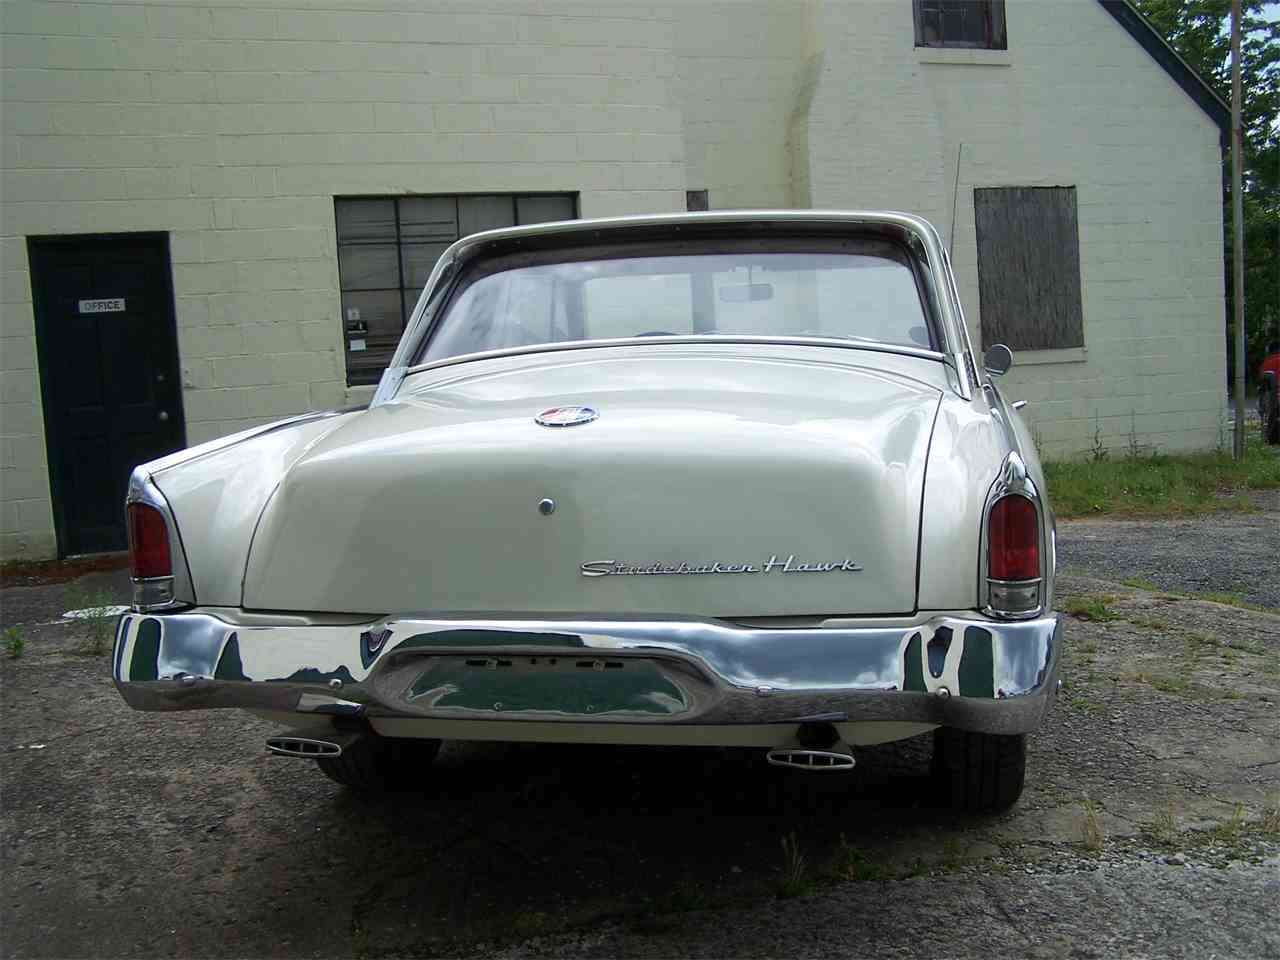 Large Picture of 1964 Studebaker Super Hawk located in Virginia - $58,750.00 Offered by Smith Automotive Investments - L409